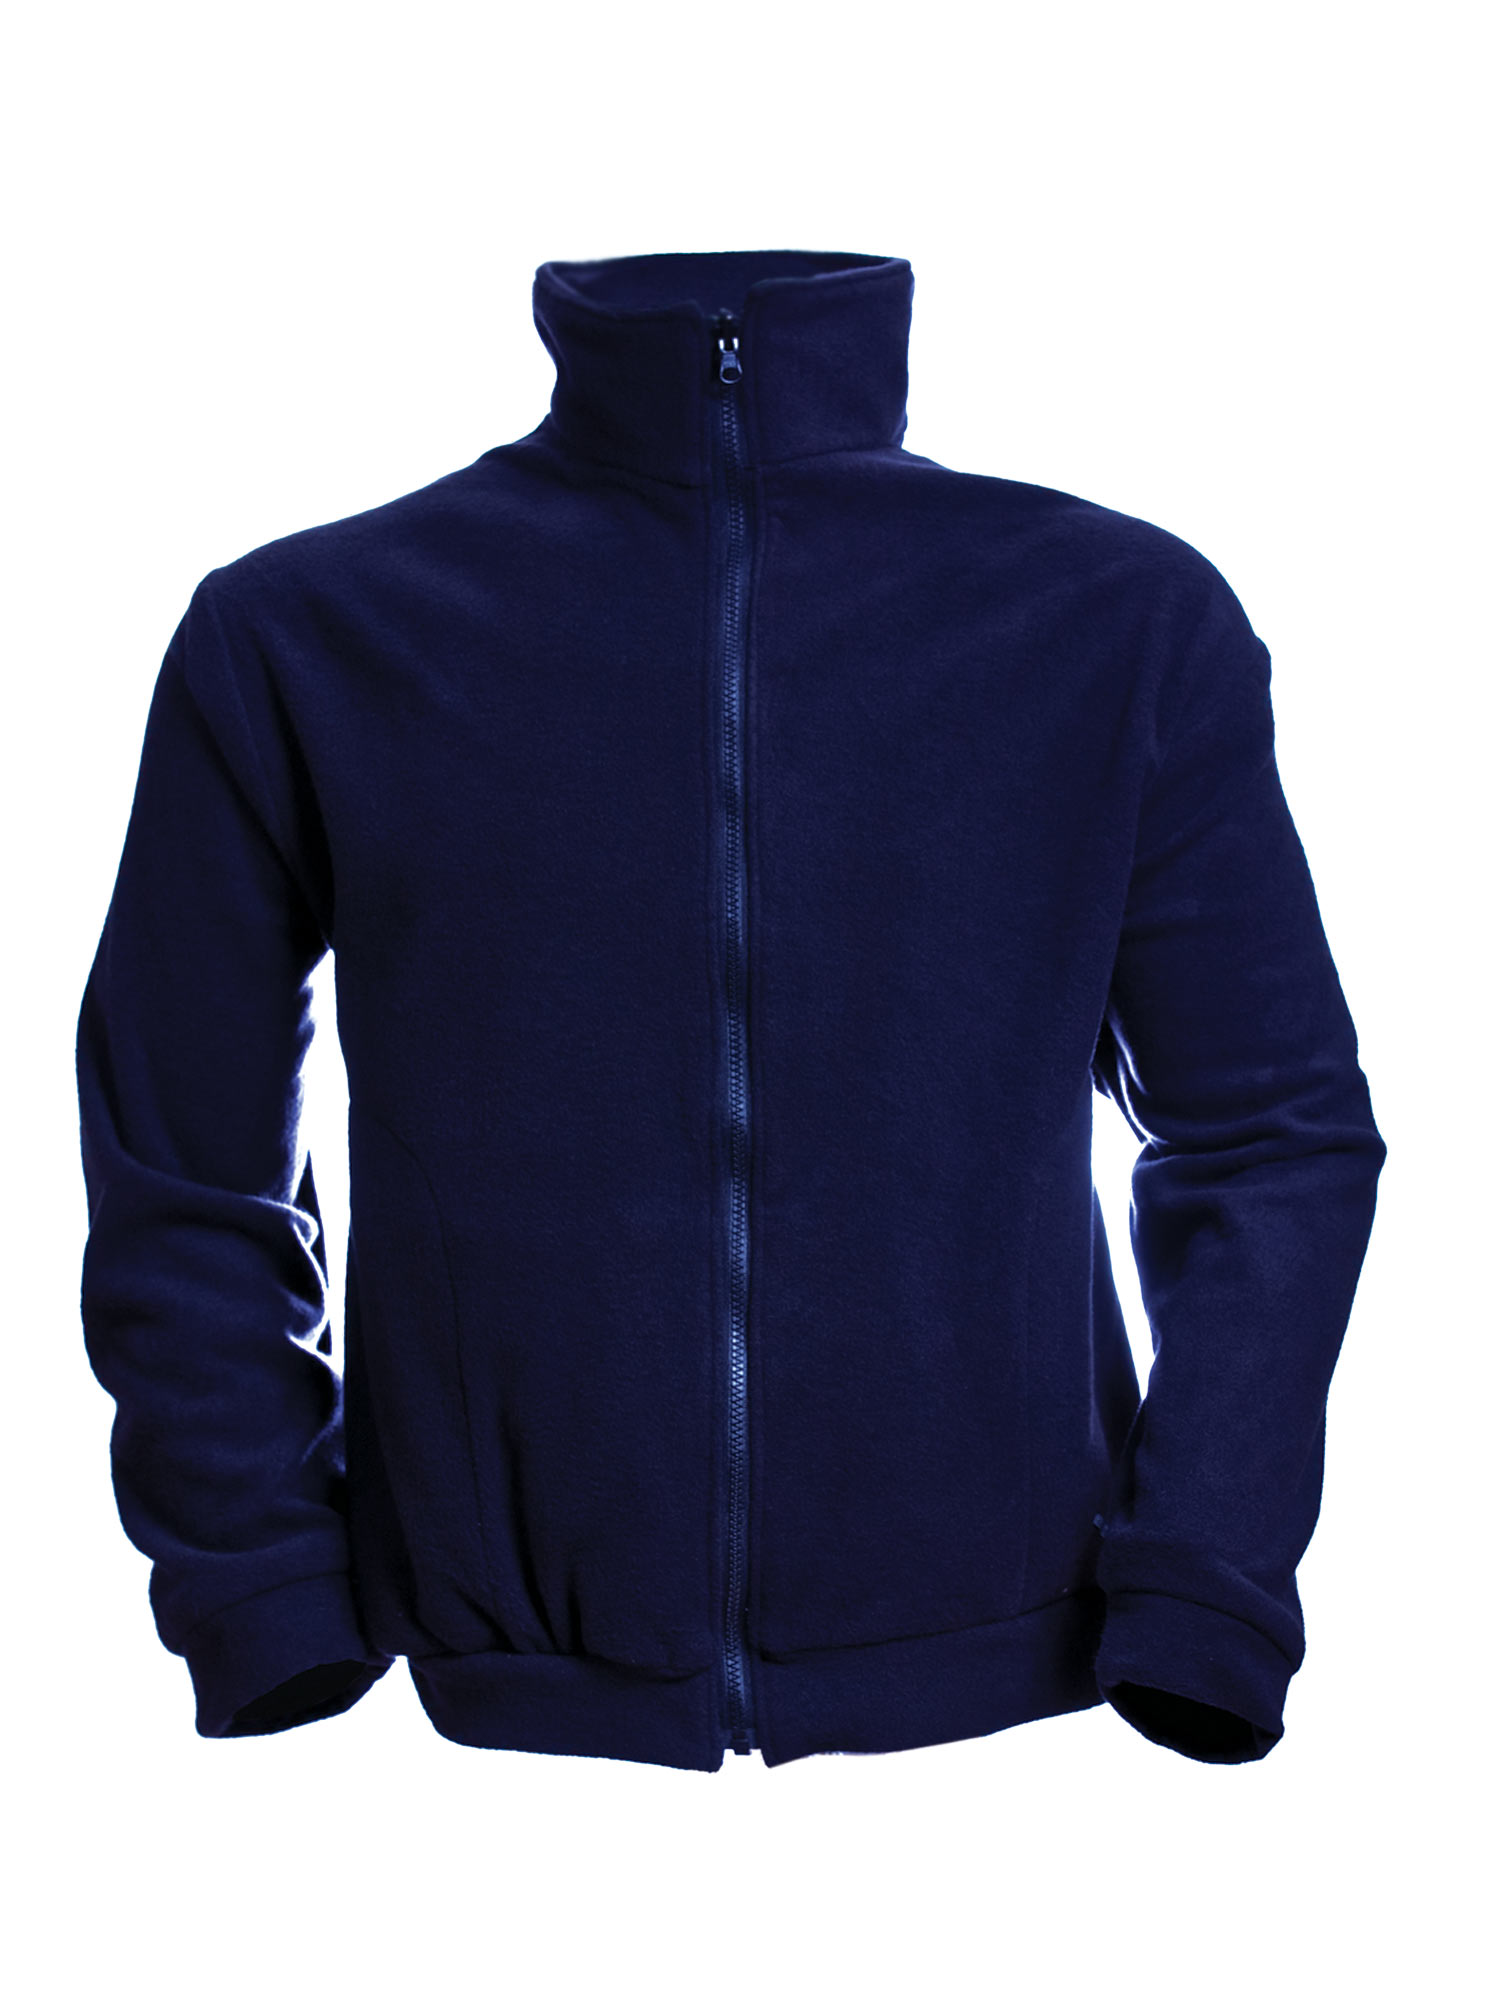 8.5oz Polartech Thermal FR Fleece Jacket-BIG BILL